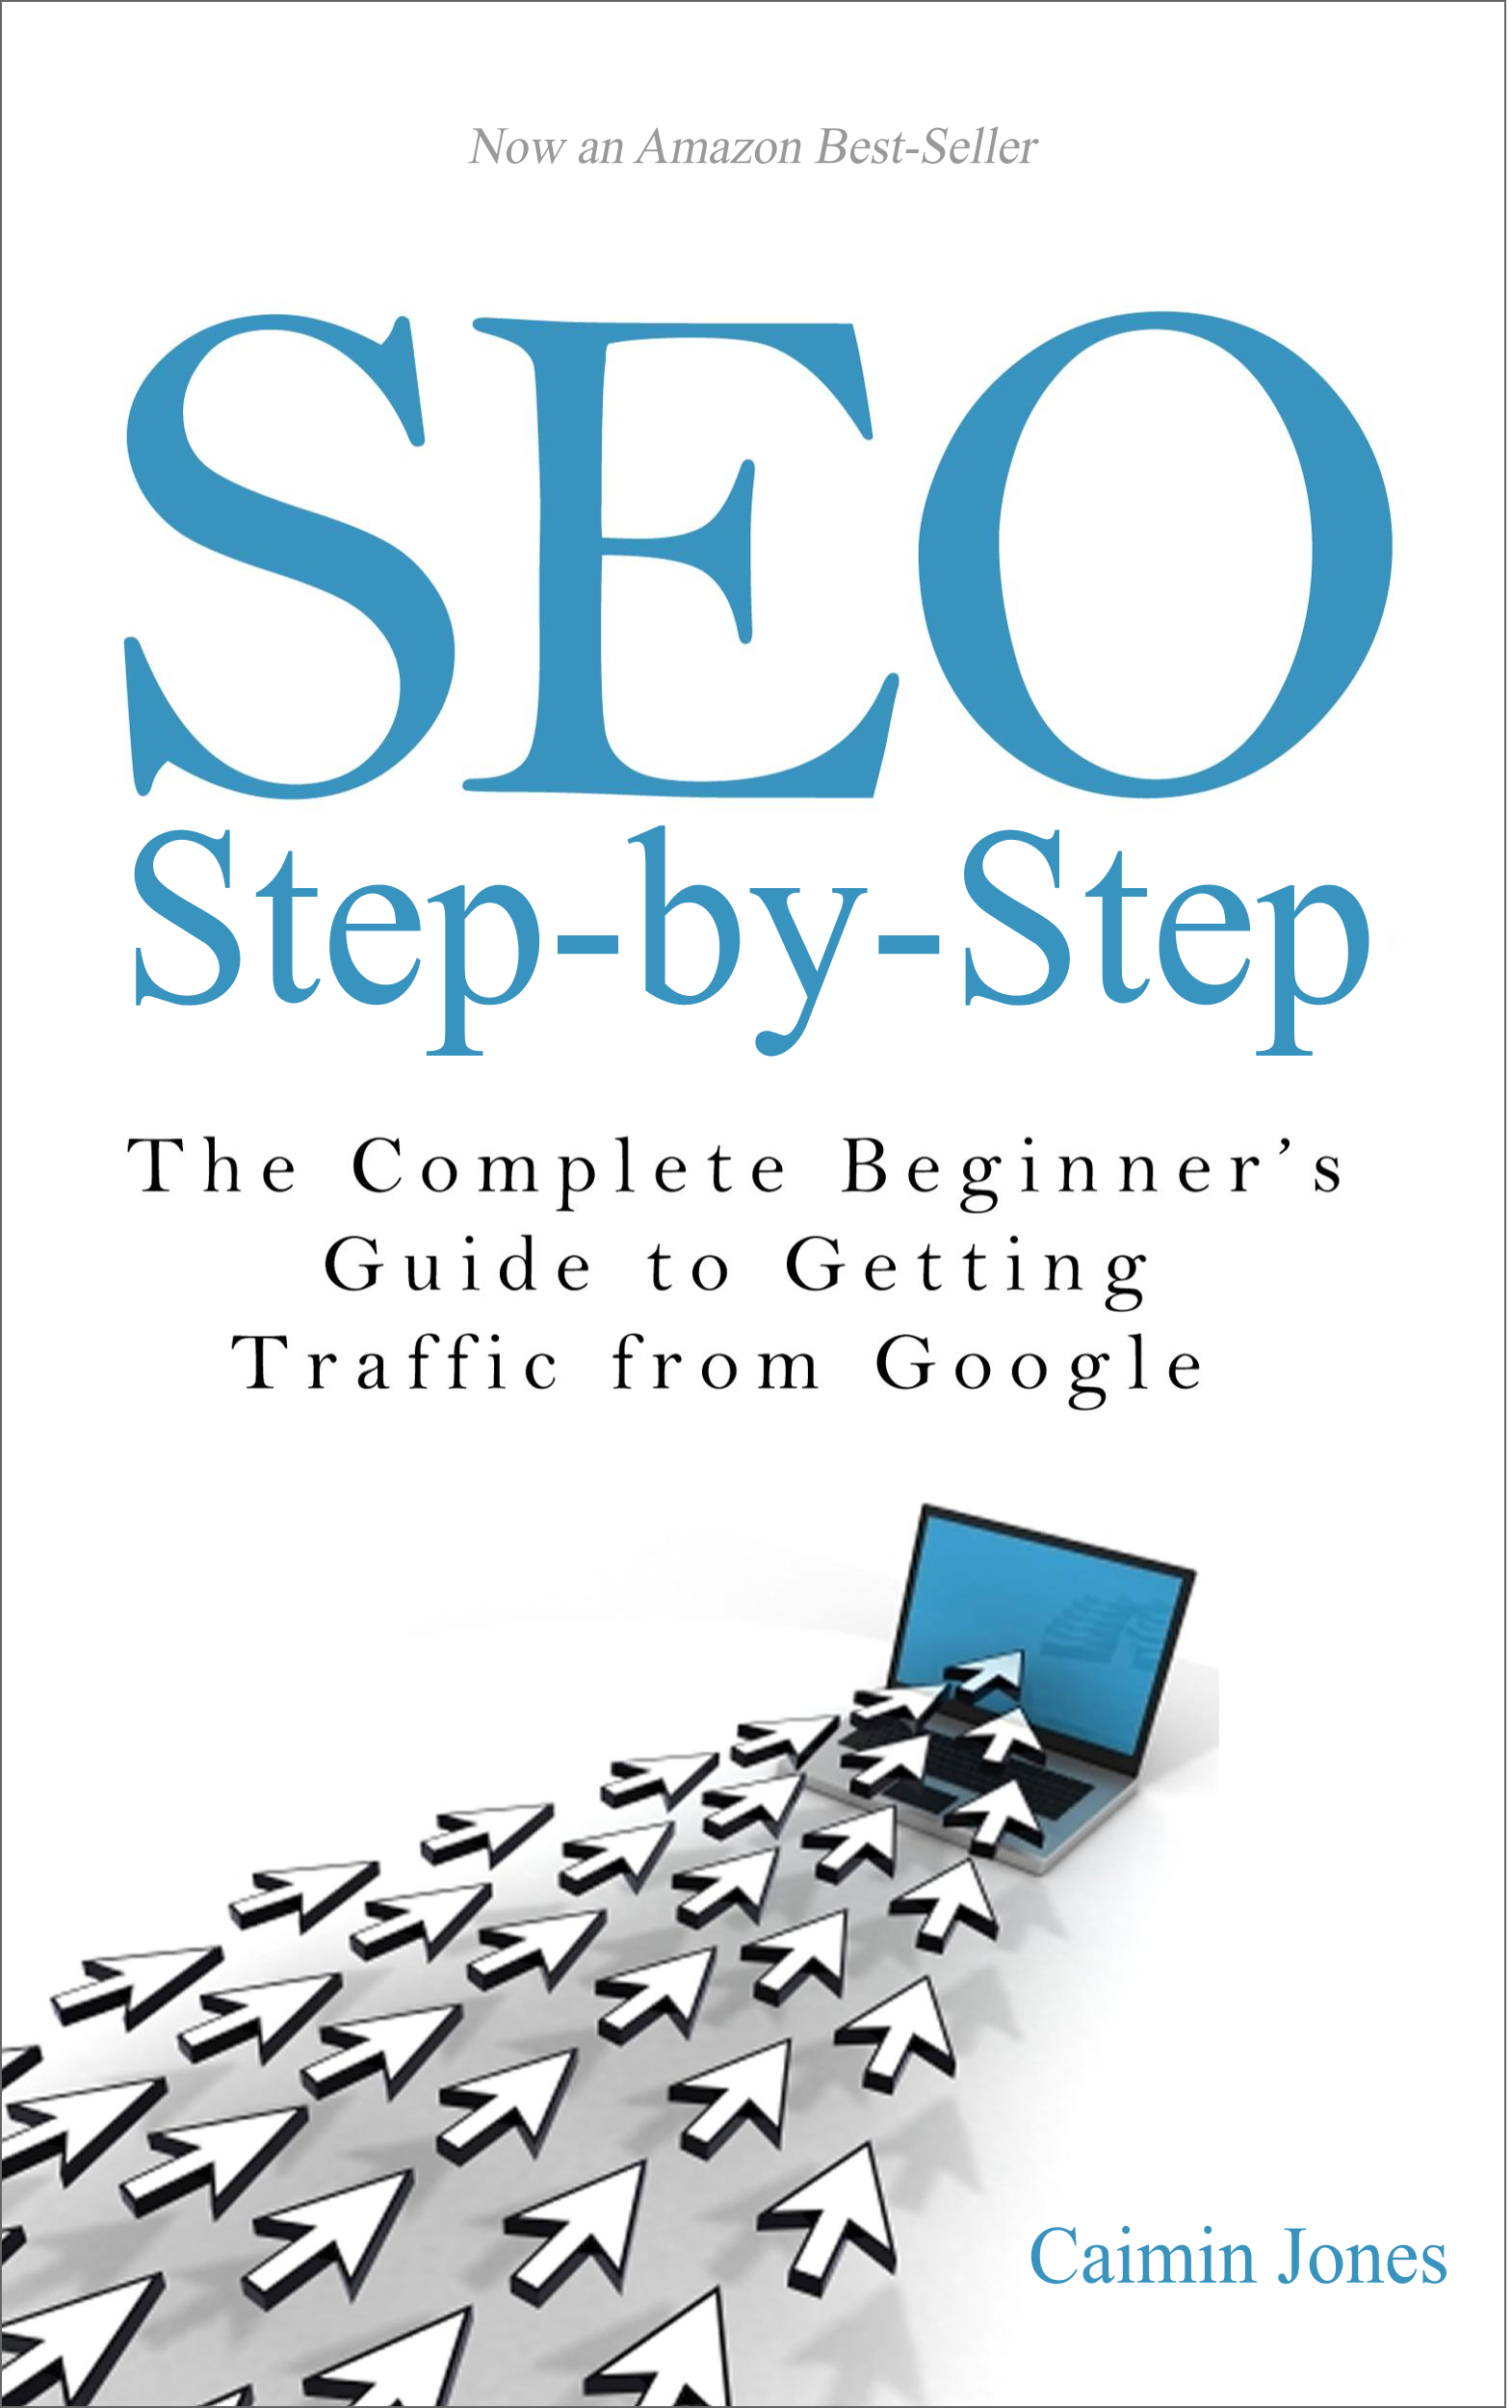 SEO Step-by-Step: The Complete Beginners Guide to Getting Traffic from Google Caimin Jones